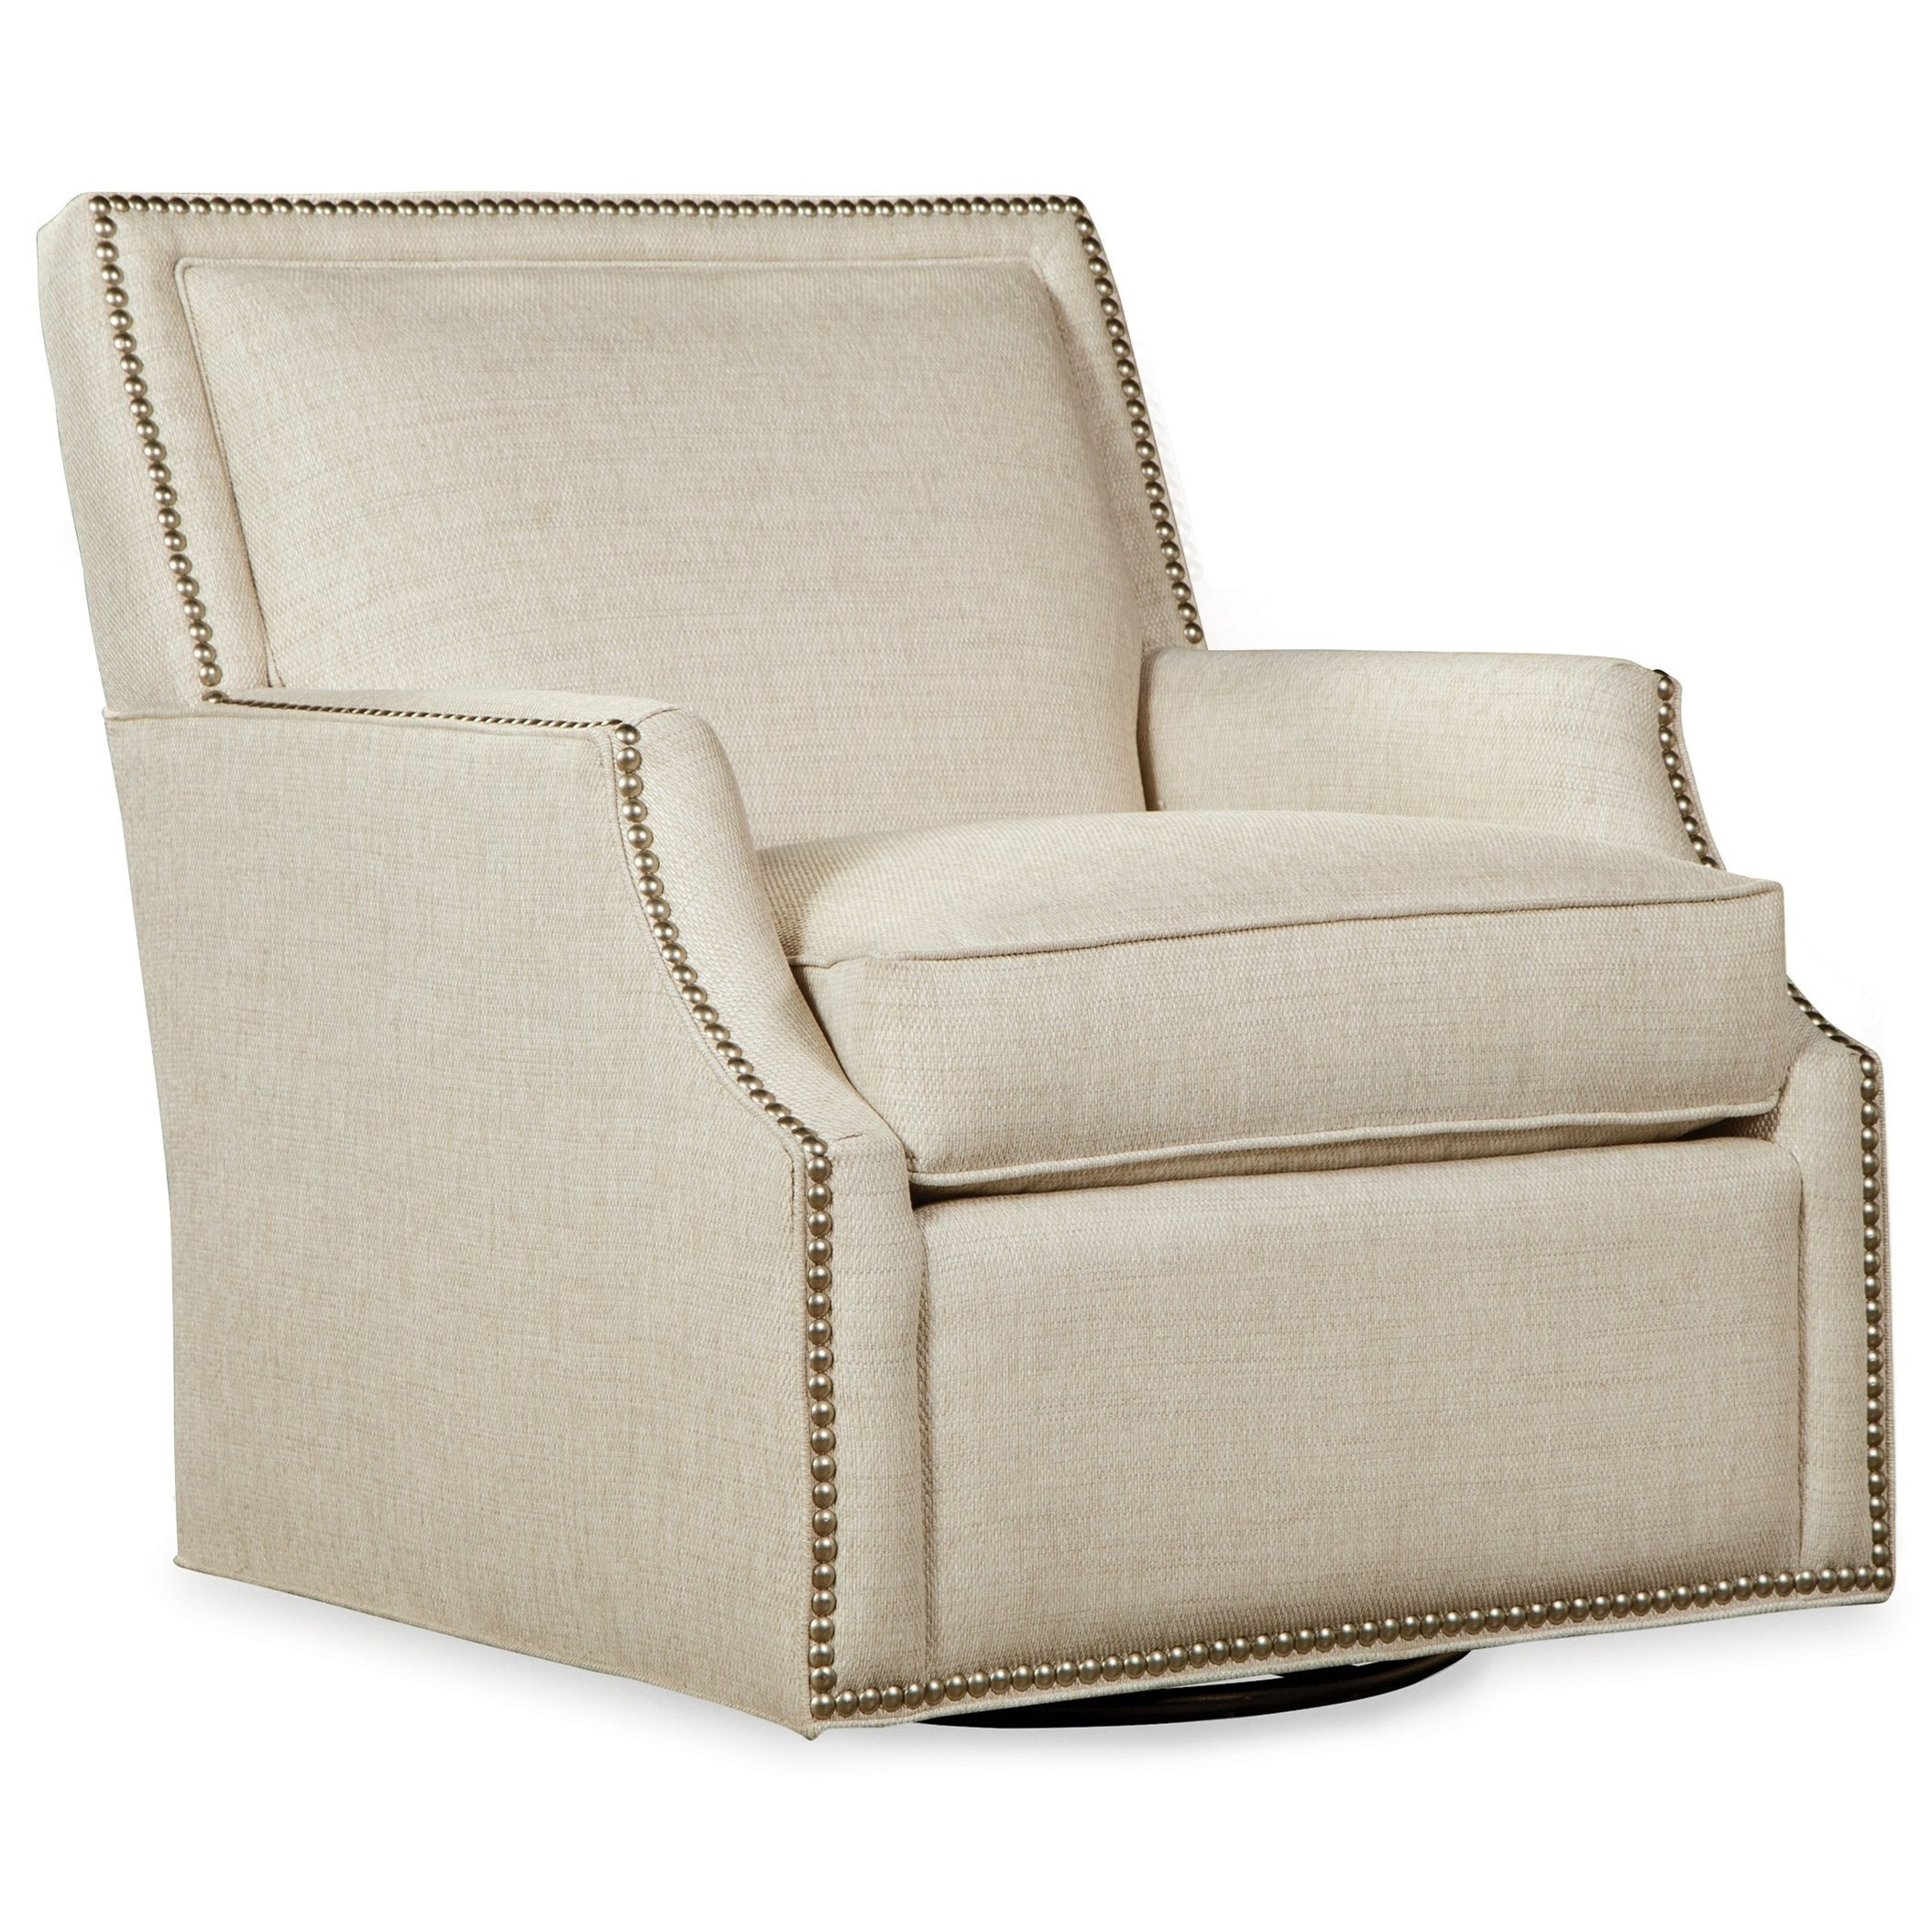 003710 Swivel Glider by Craftmaster at Powell's Furniture and Mattress